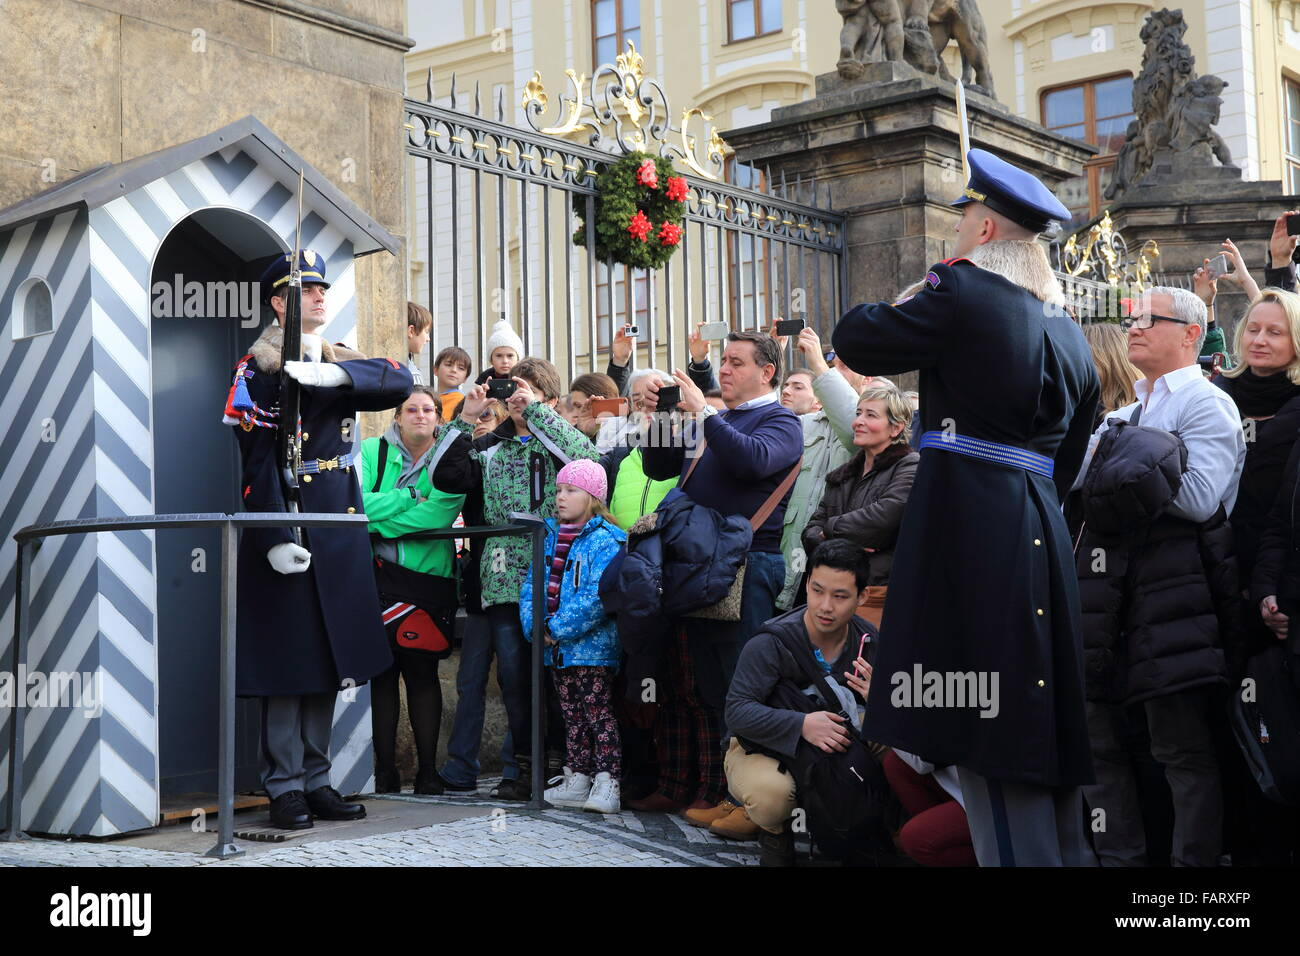 The Changing of the Guard midday ceremony at the entrance to Prague Castle, in wintertime, Czech Republic, Europe - Stock Image